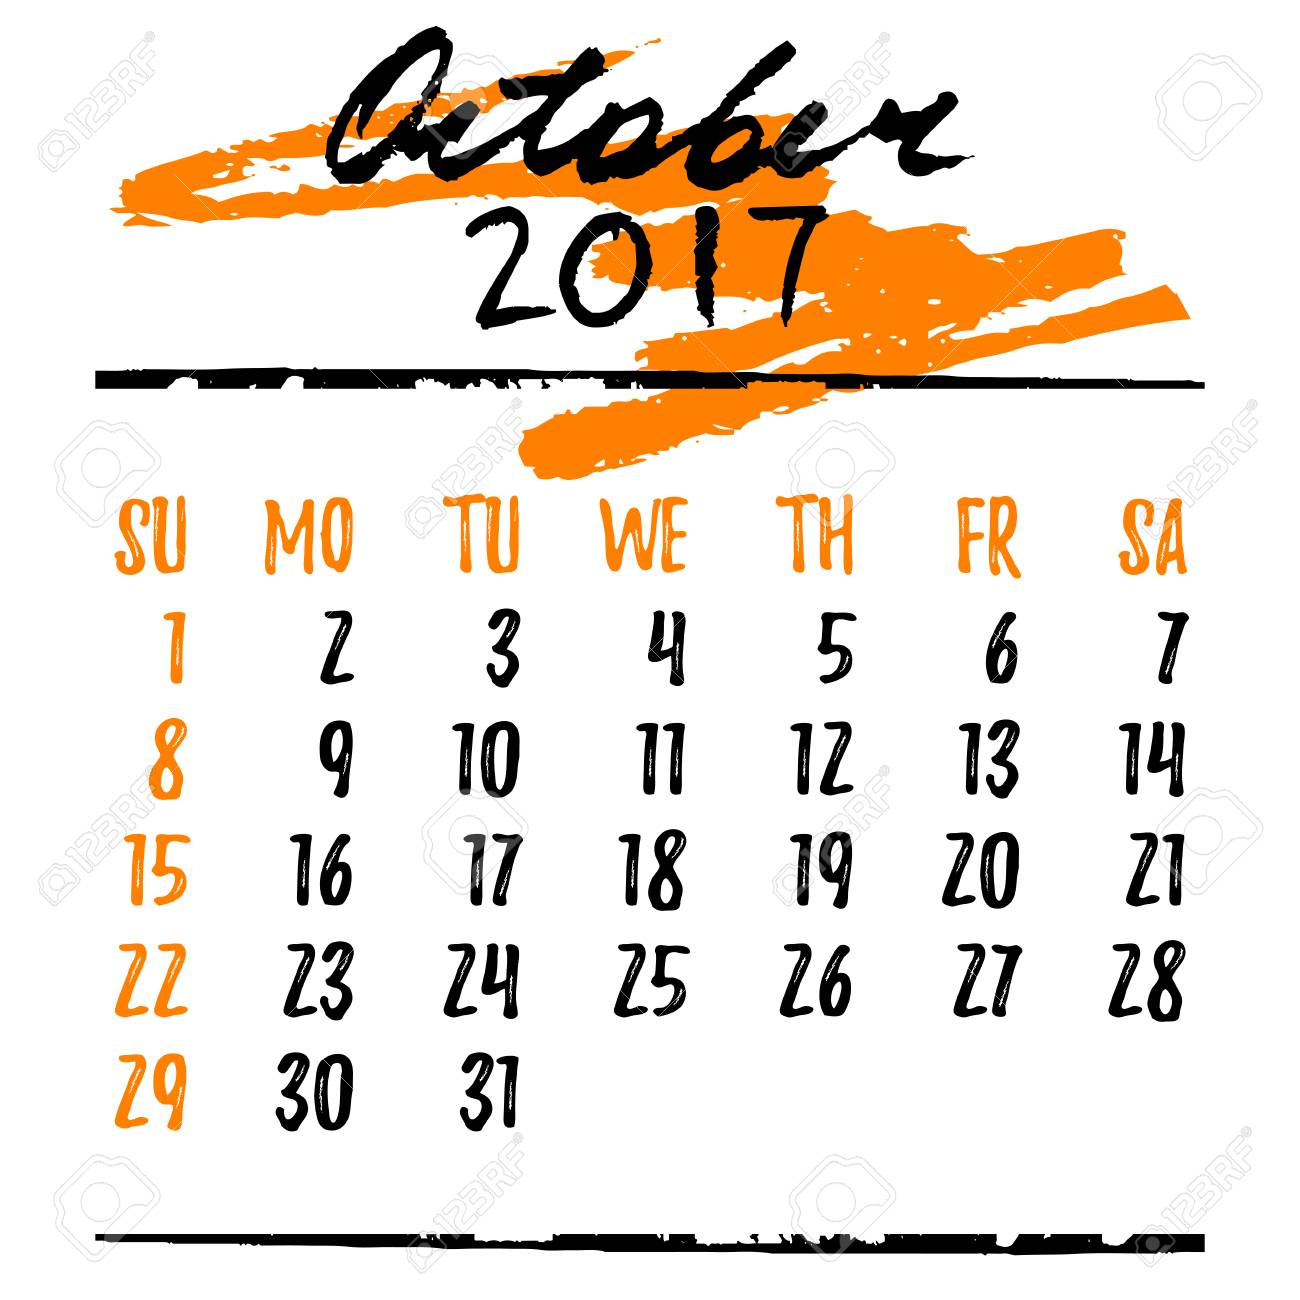 October Calendar Design : Calendar design grid in hand written style with lettering and